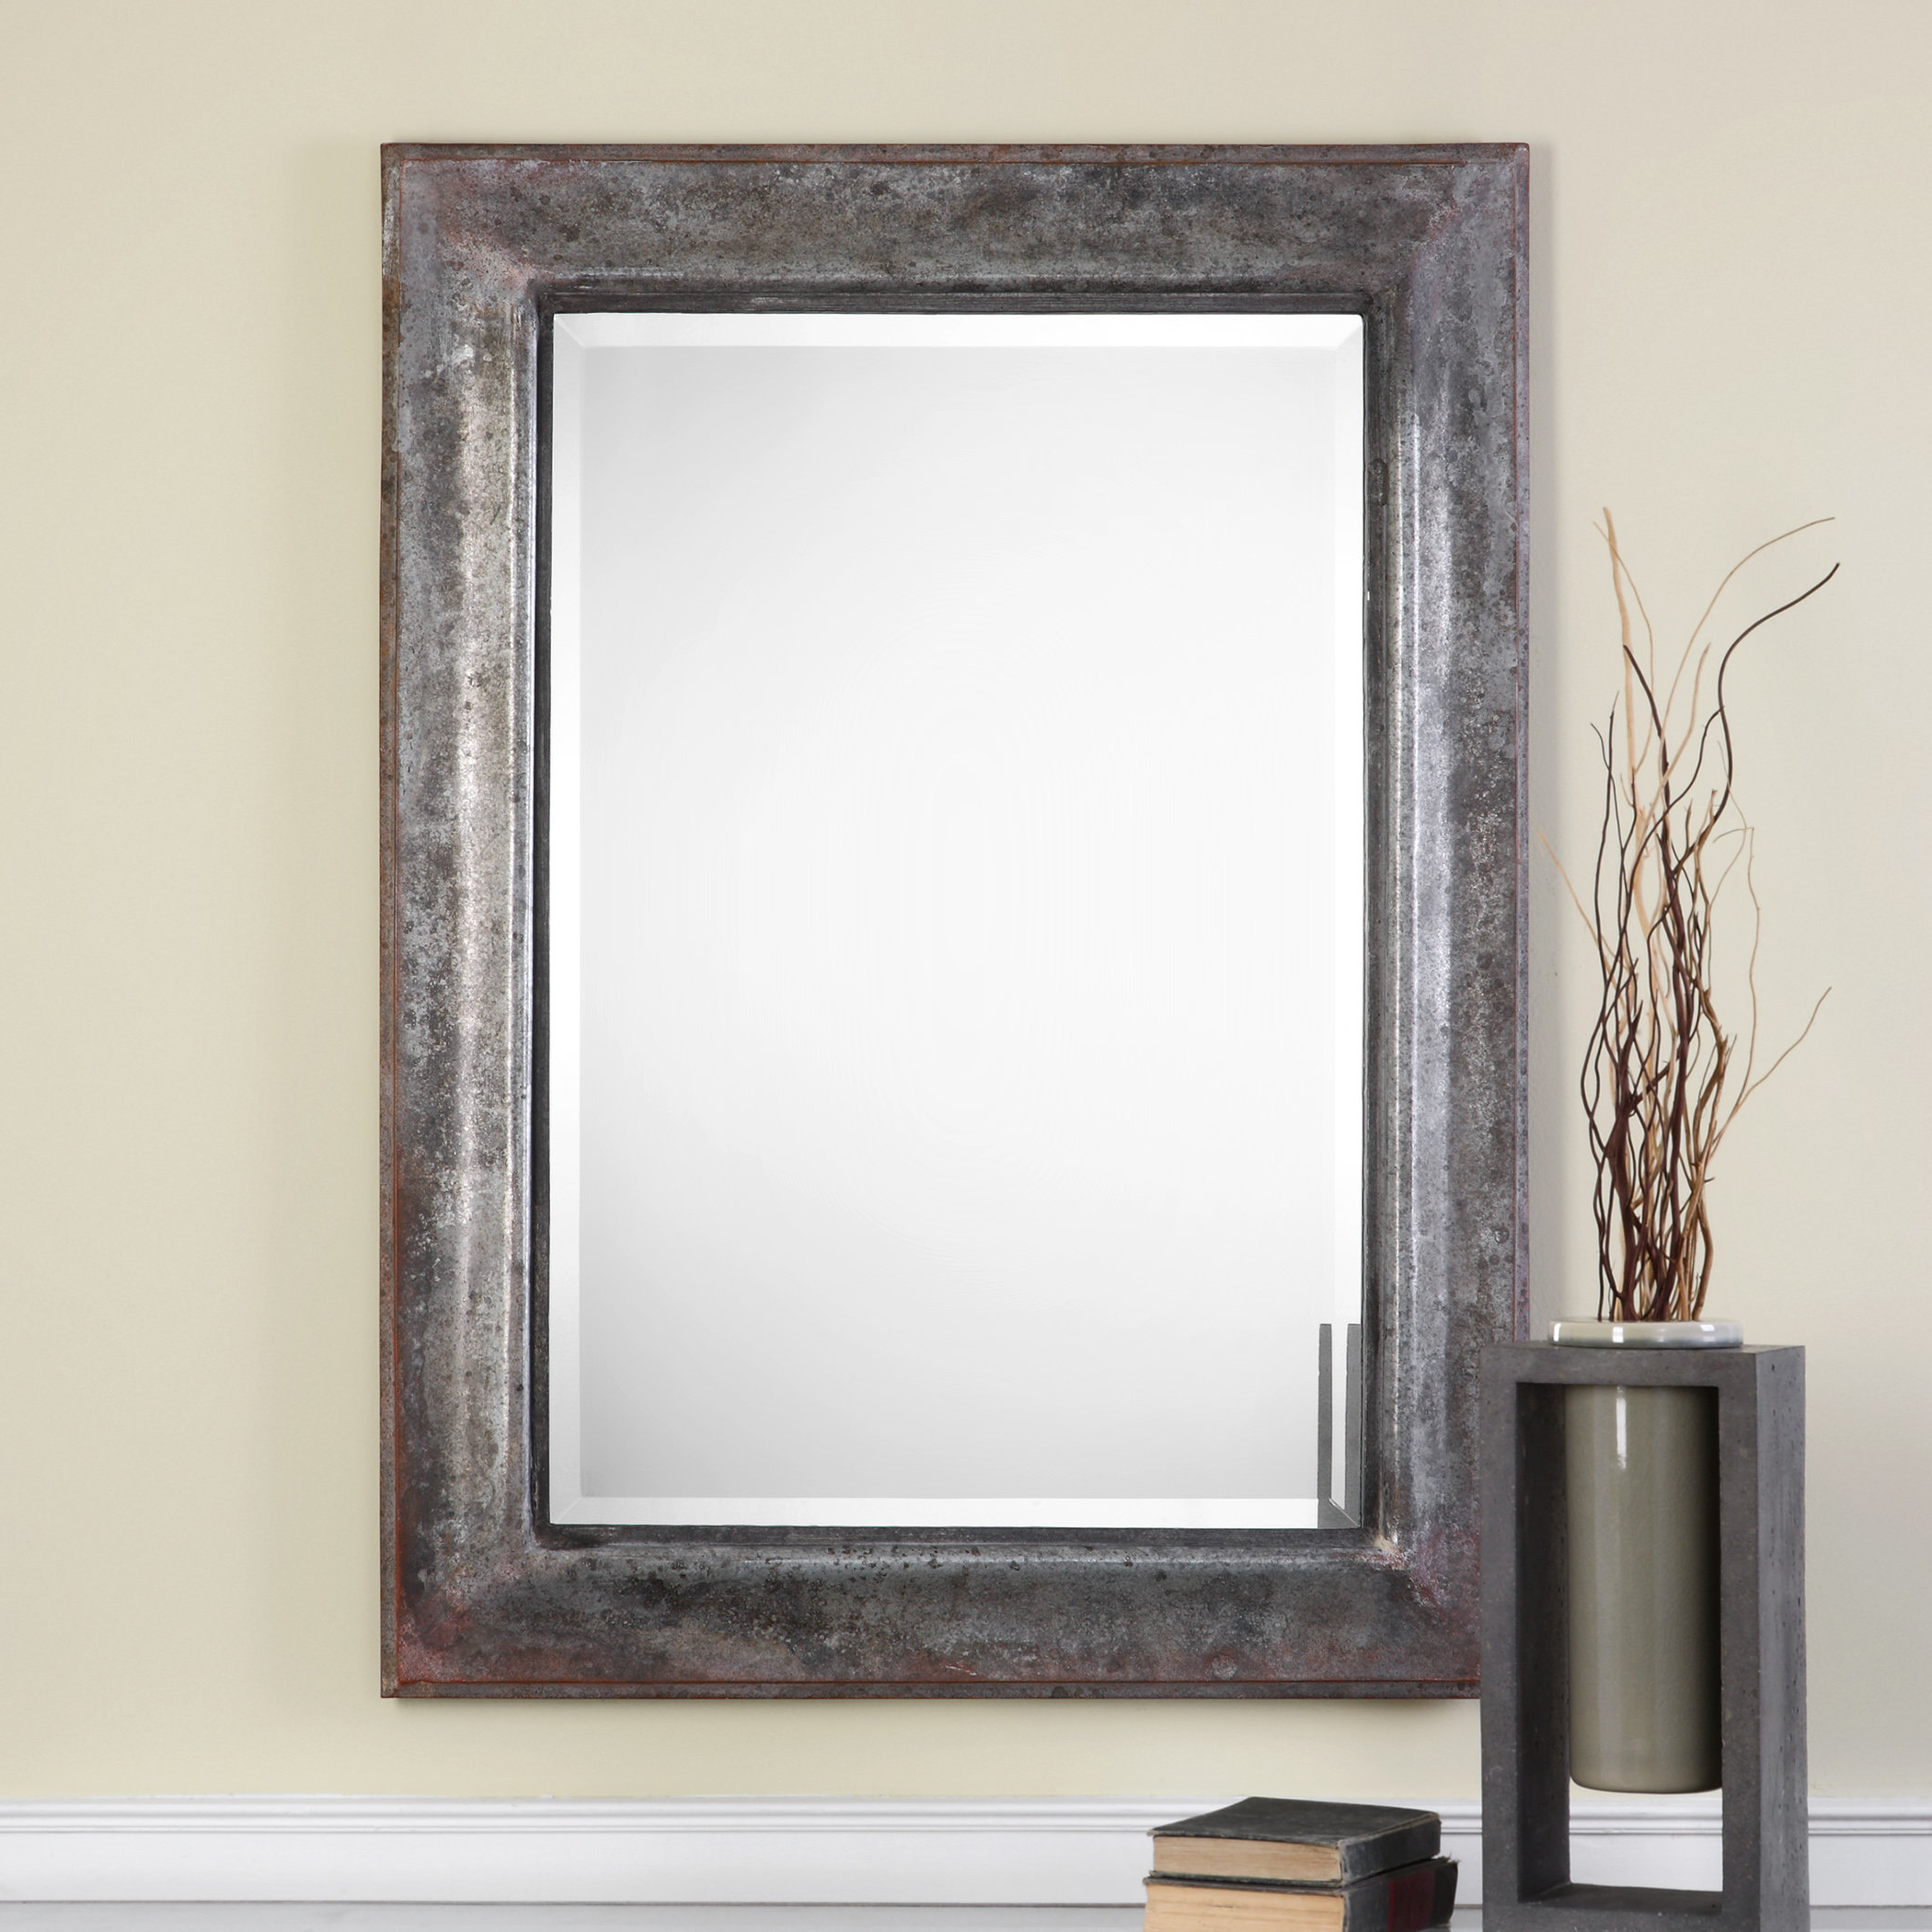 Most Recent Modern & Contemporary Beveled Wall Mirror Pertaining To Dedrick Decorative Framed Modern And Contemporary Wall Mirrors (View 14 of 20)